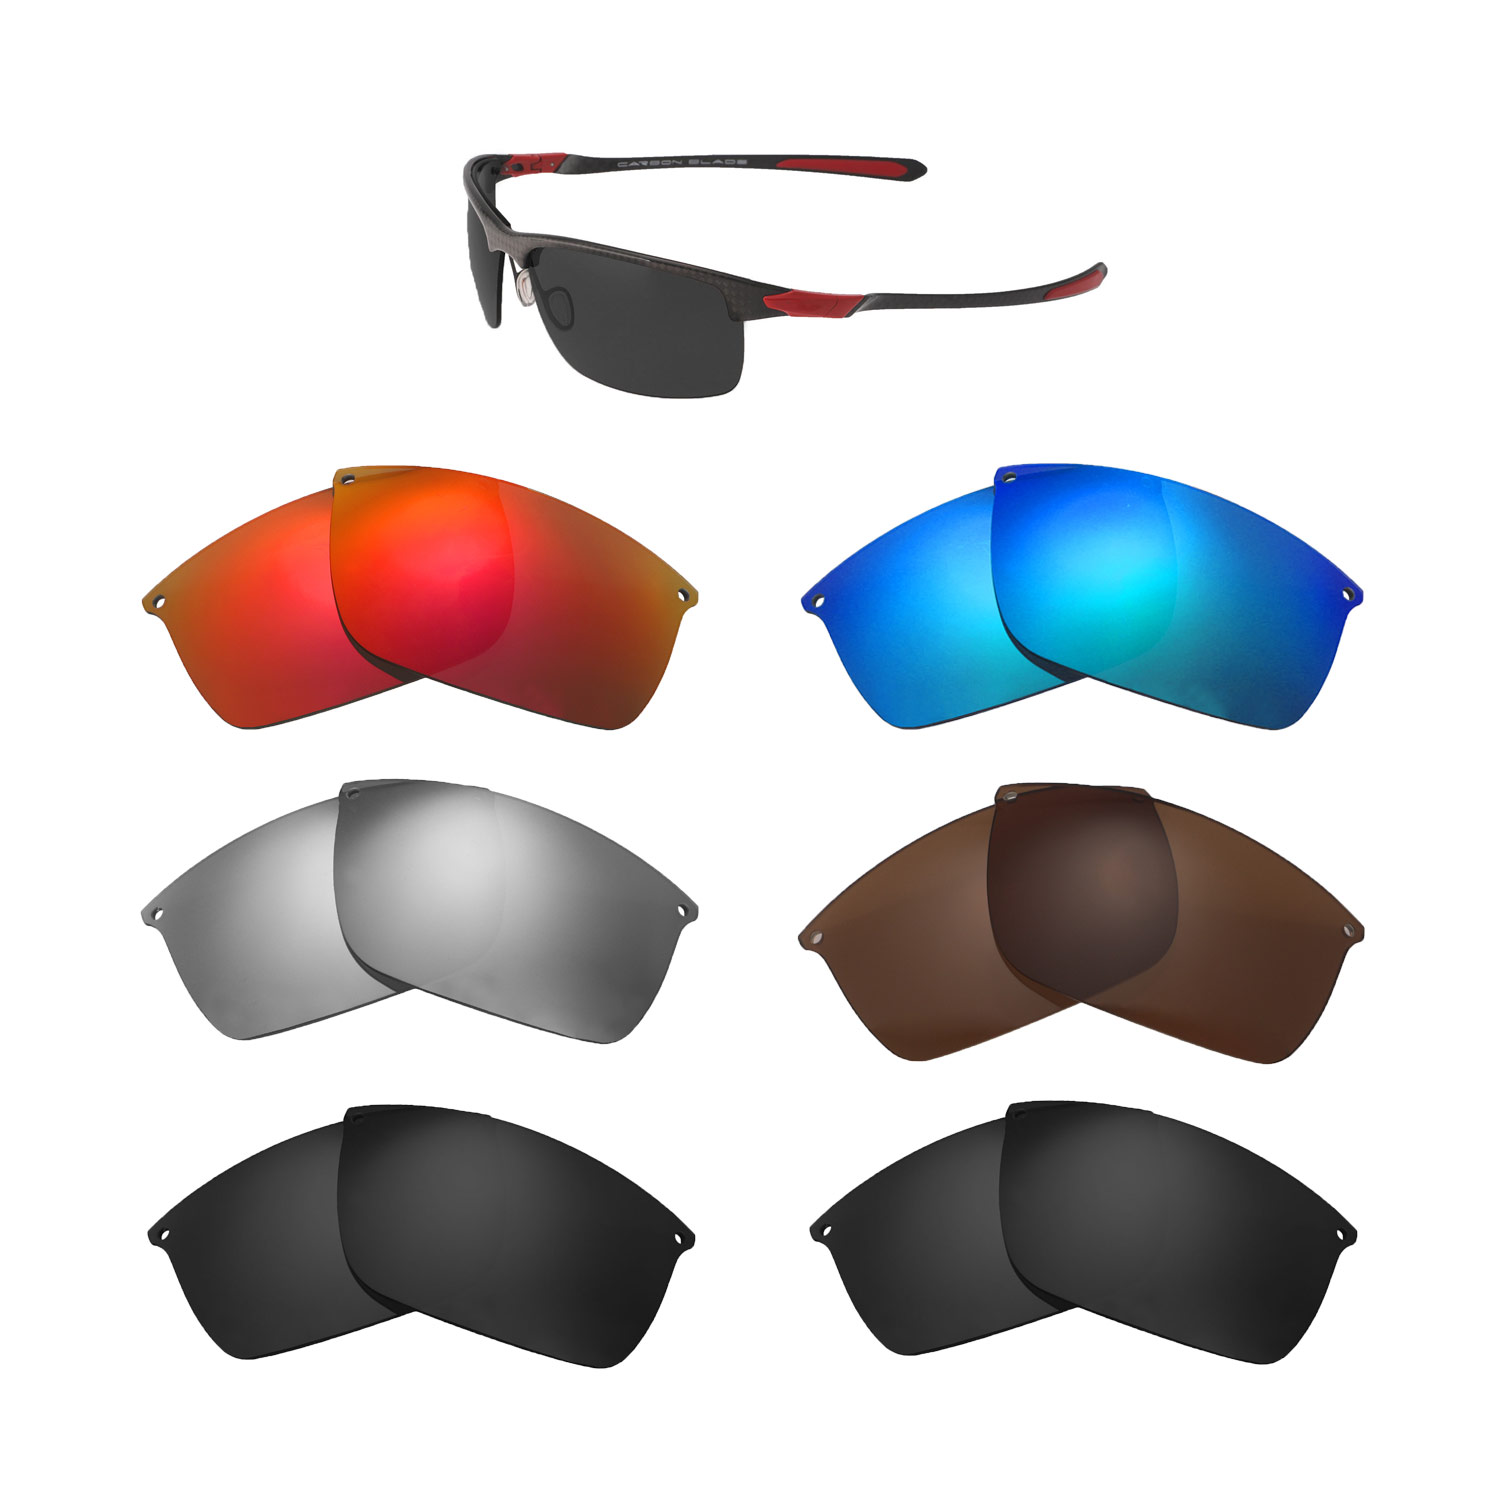 740525fb683 Details about Walleva Replacement Lenses For Oakley Carbon Blade Sunglasses-  Multiple Options